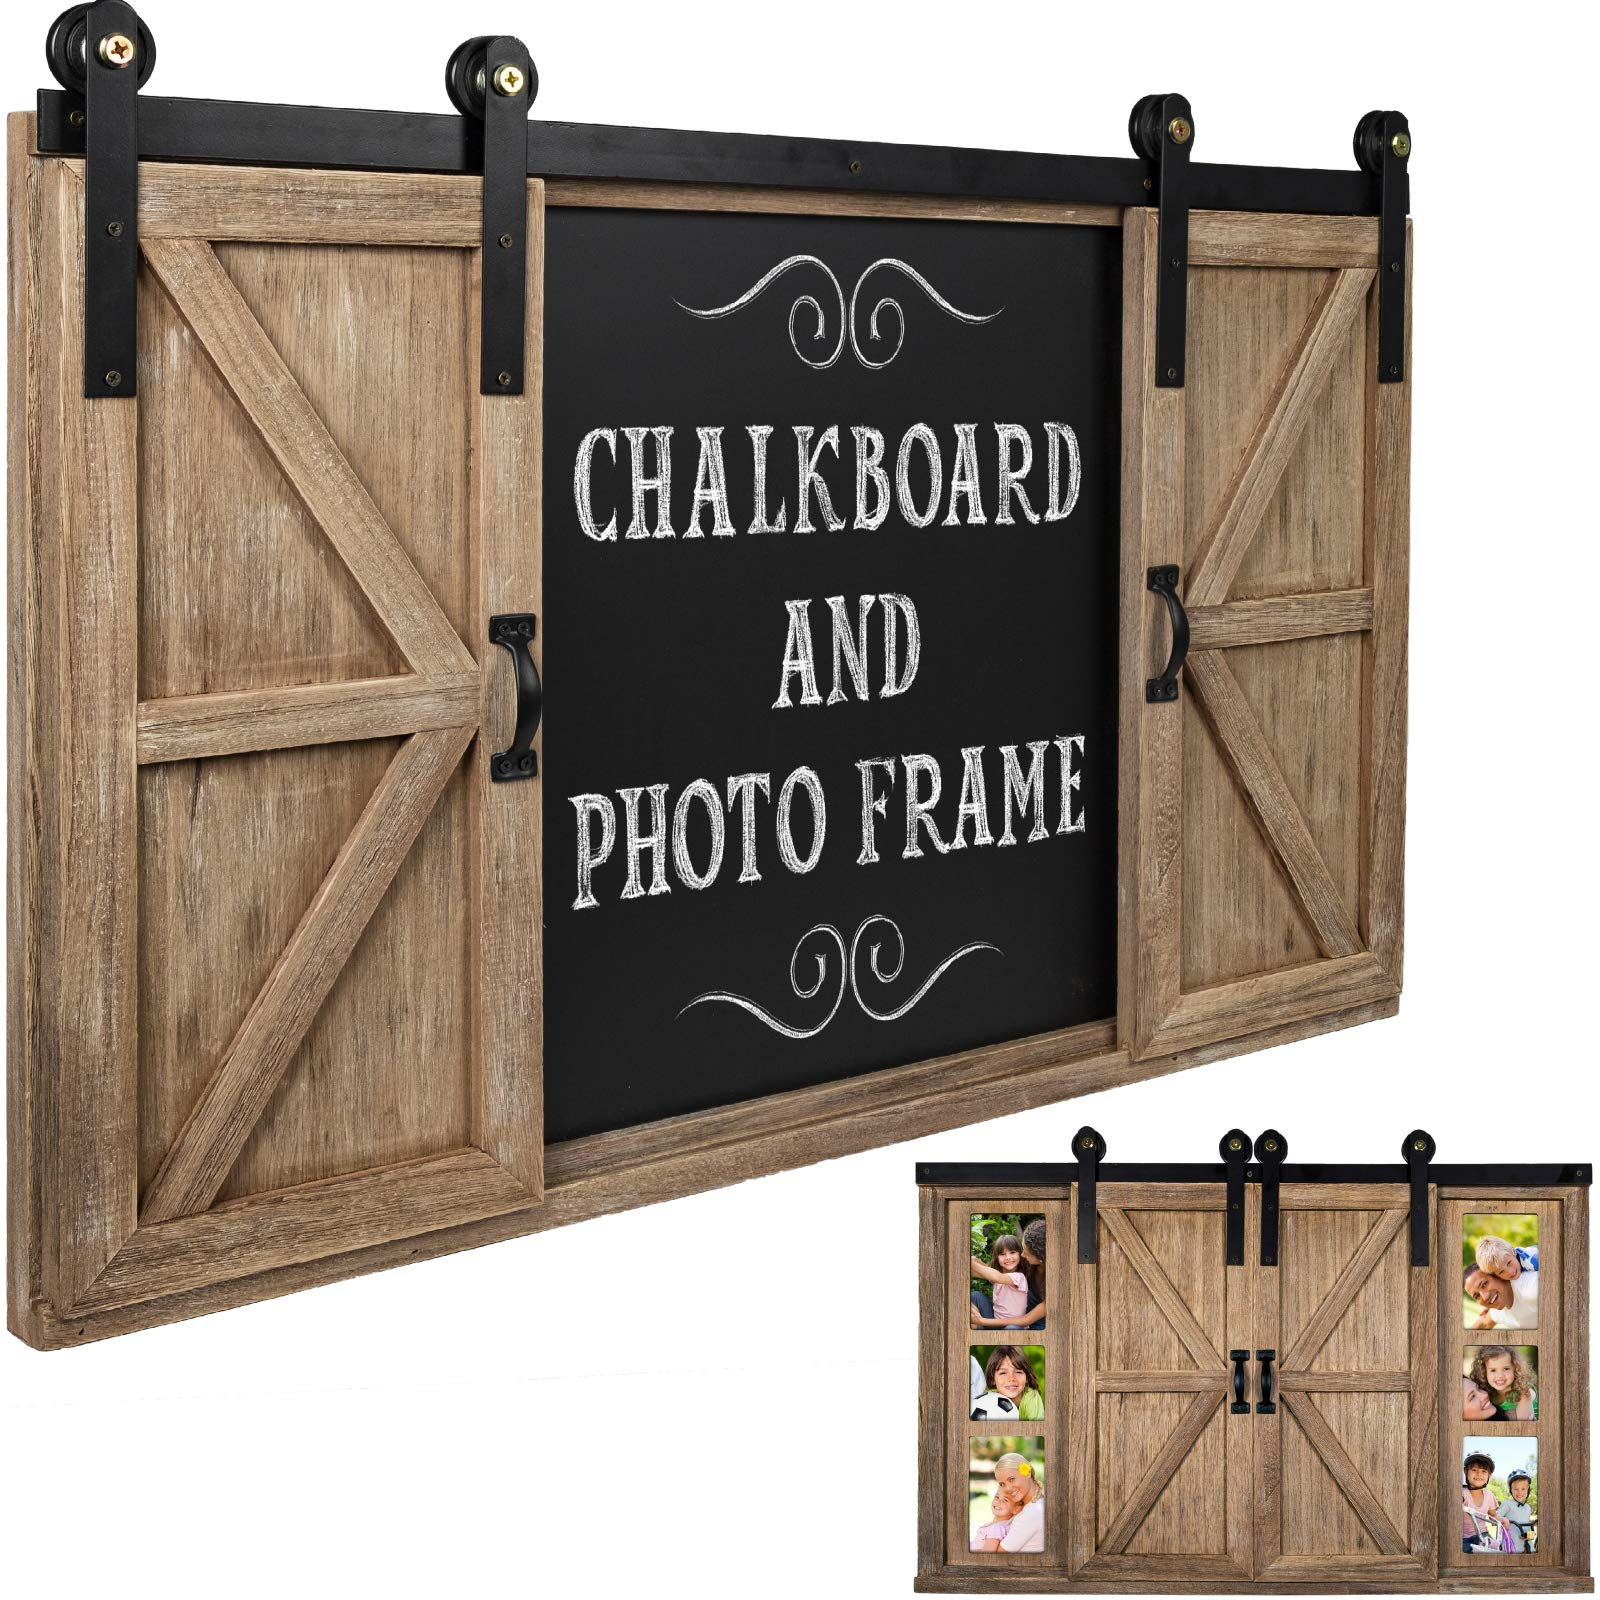 Rustic Wood Chalkboard with Four 4x6 Hideaway Photos: Large Wall Mounted Magnetic Chalk Board, Perfect for Kitchen Décor, Restaurant Menu, Bulletin Sign by Excello Global Products